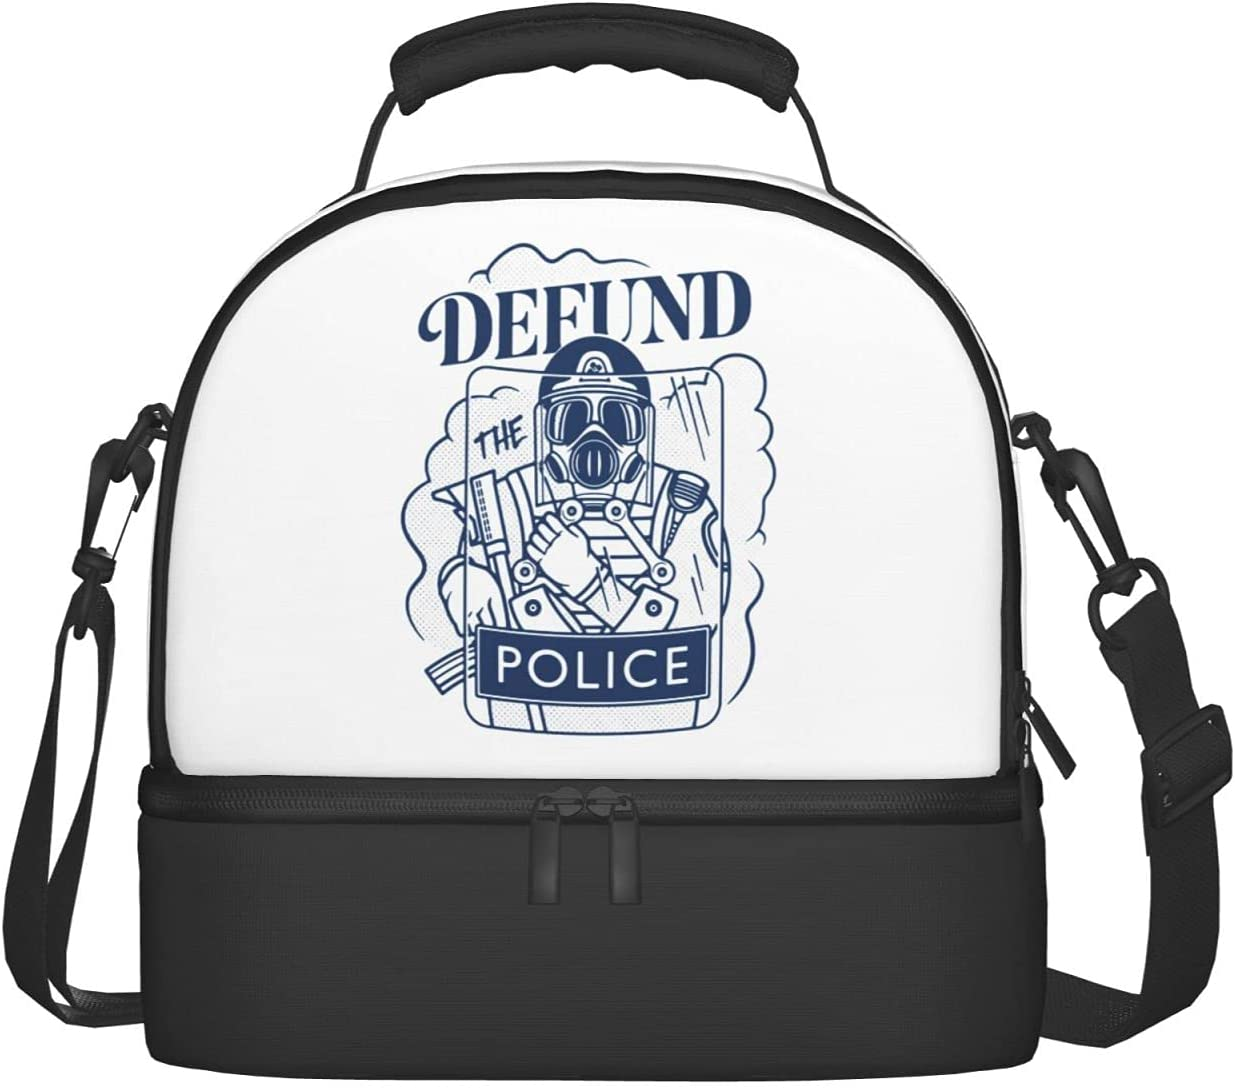 Max 59% OFF Defund The Police End Brutality Ranking TOP9 Two Compartmen Bags Lunch